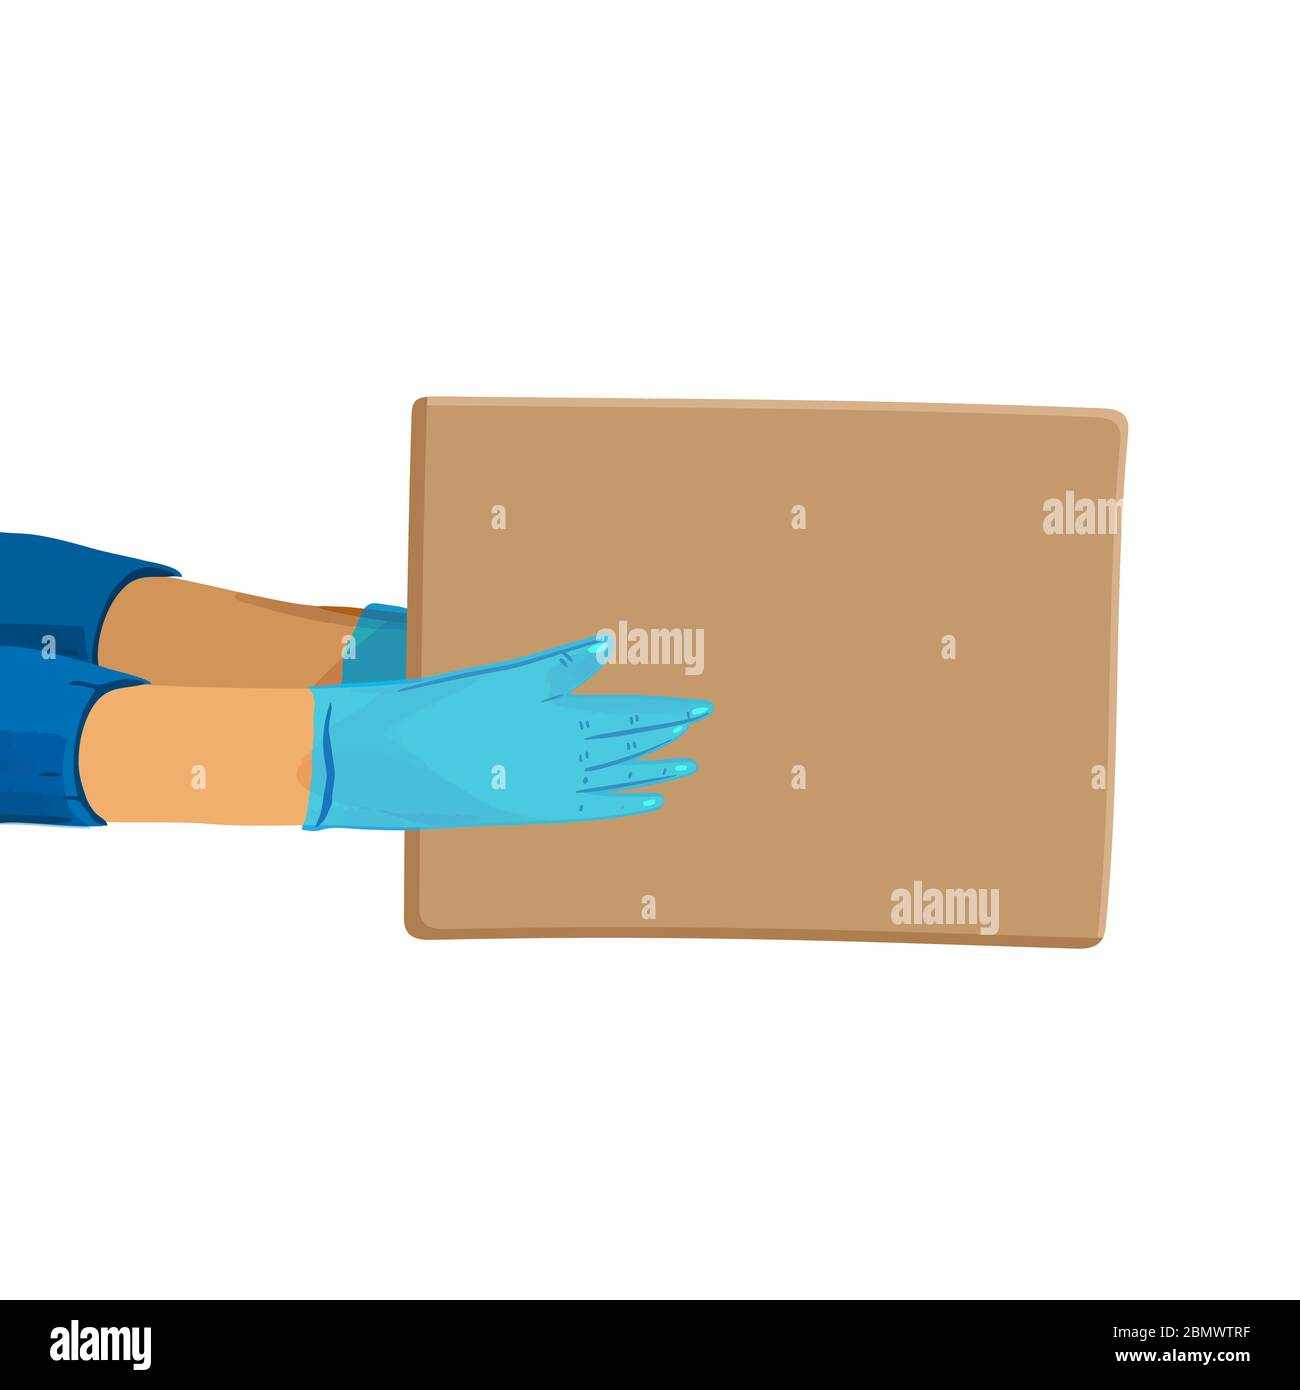 Safe delivery vector cartoon banner for Save Delivery Services and E-Commerce during covid quarantine. Hands in gloves giving a parcel. Stock Vector